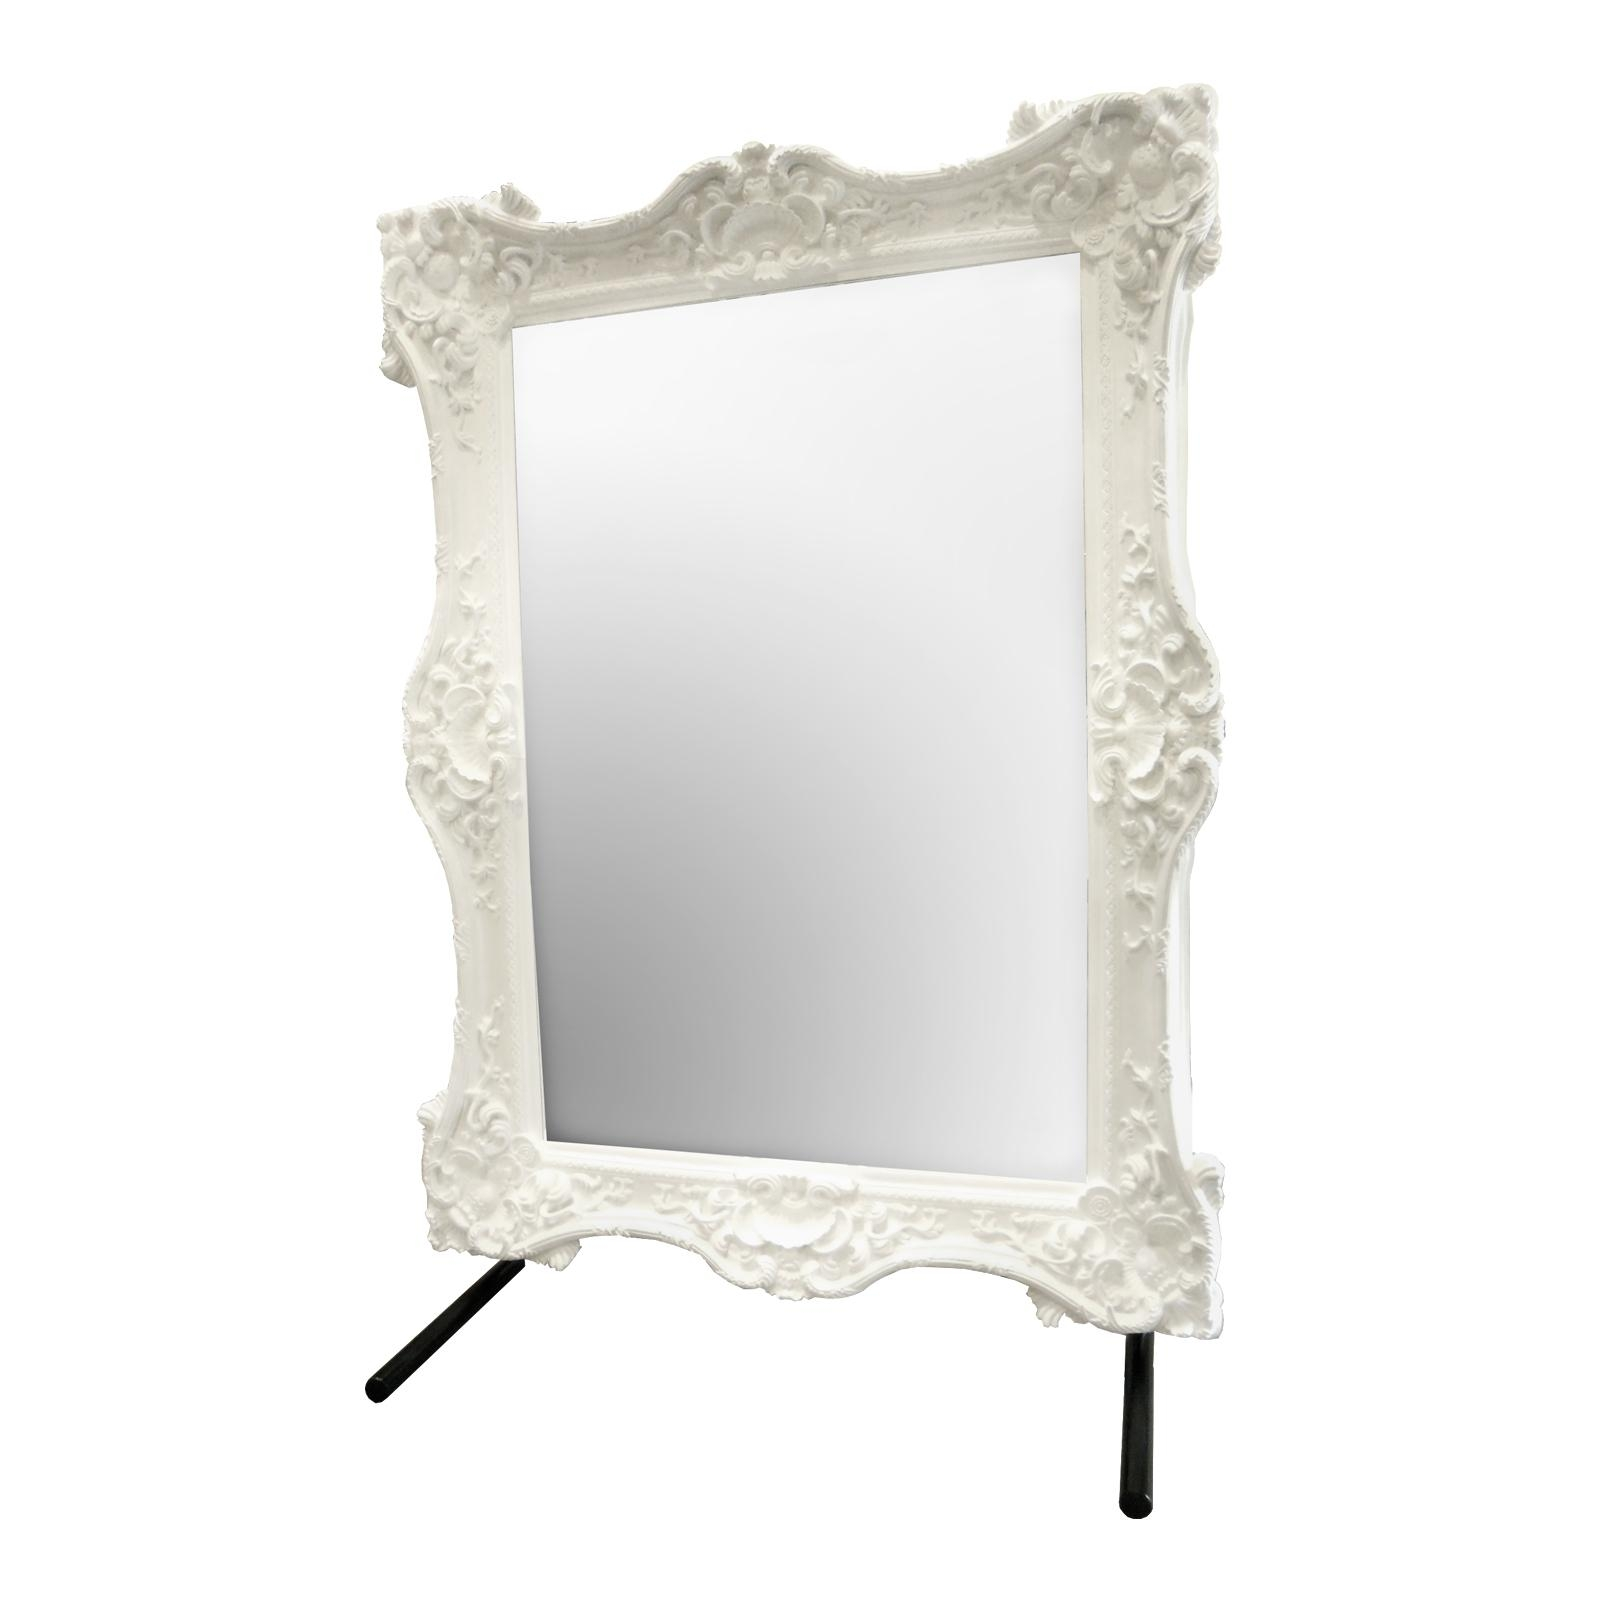 Bathroom: Astounding Baroque Mirror With Unique Frame For Bathroom Intended For Baroque Black Mirror (Image 4 of 20)